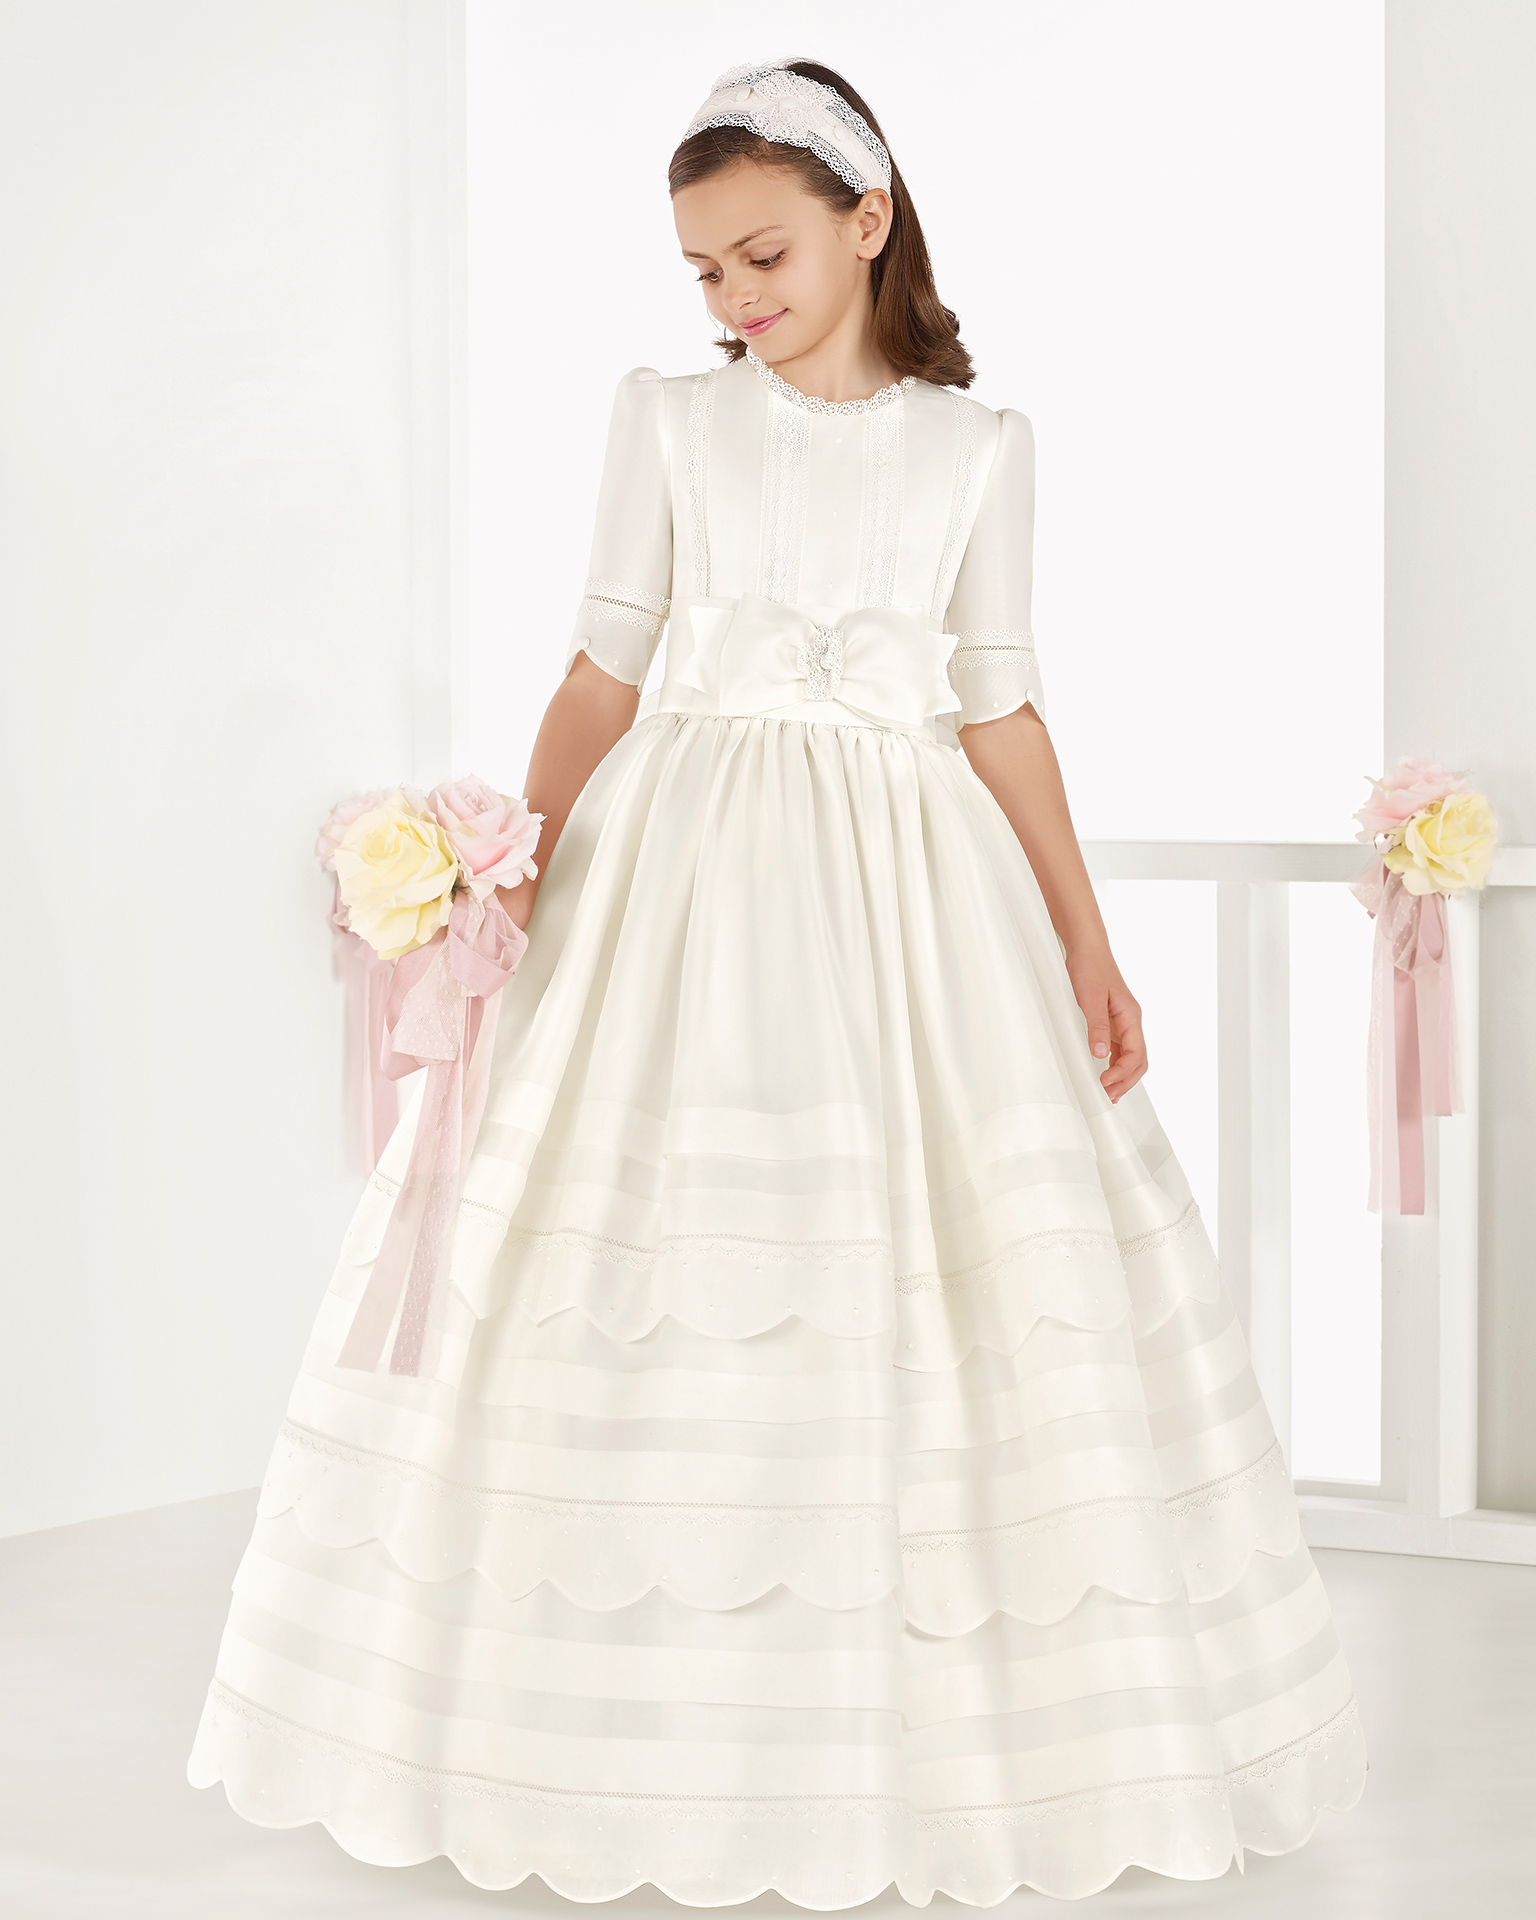 Classic Italian gazar First Communion dress with regular waist and pin tucks, in ivory. 2018 AIRE COMUNION Collection.